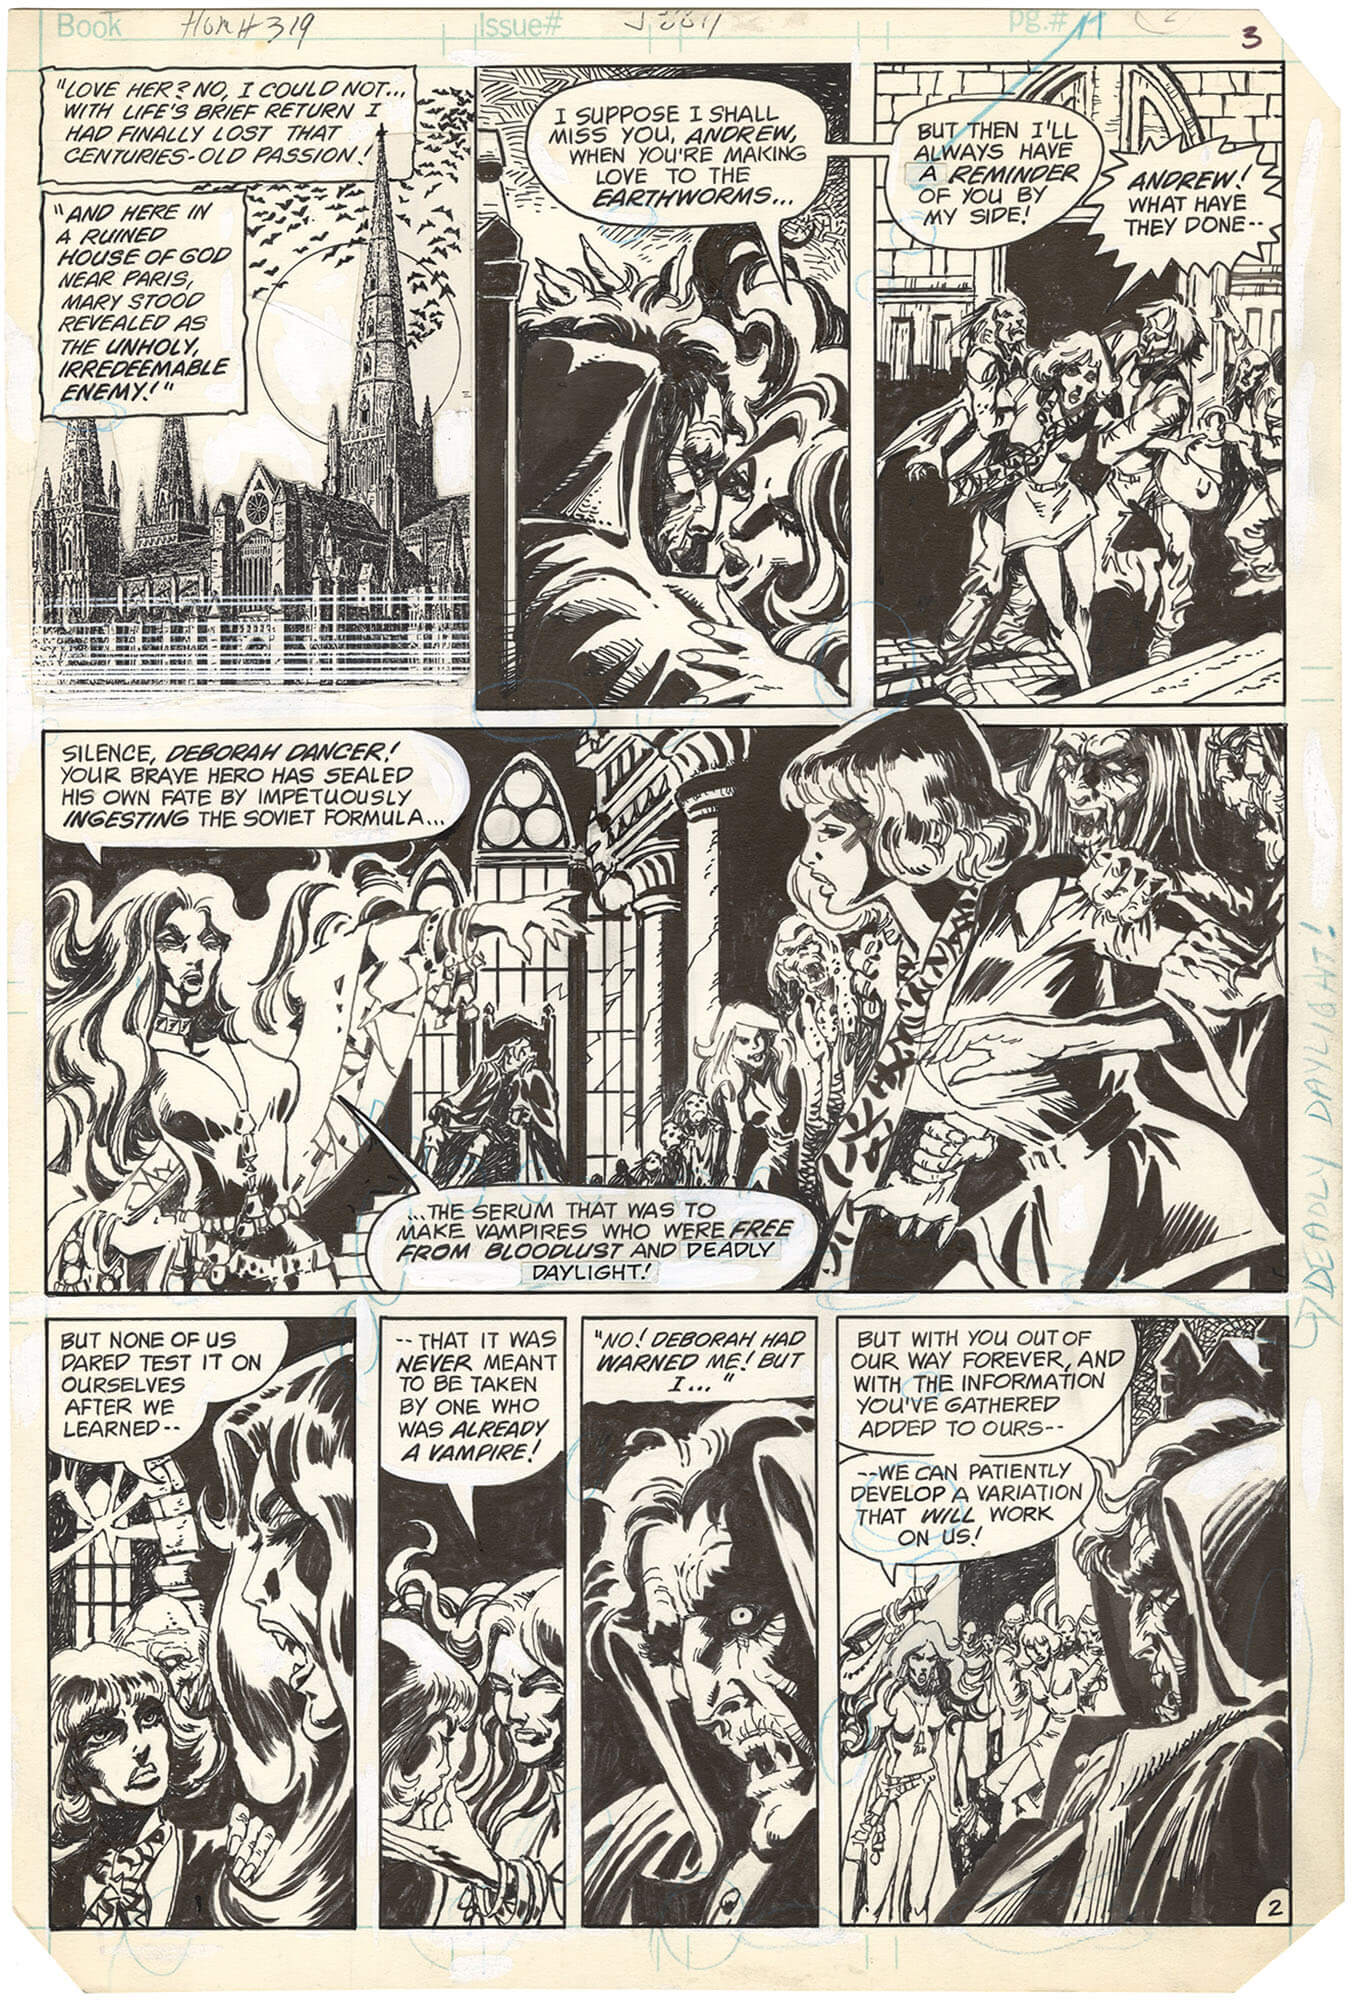 House of Mystery #319 p2